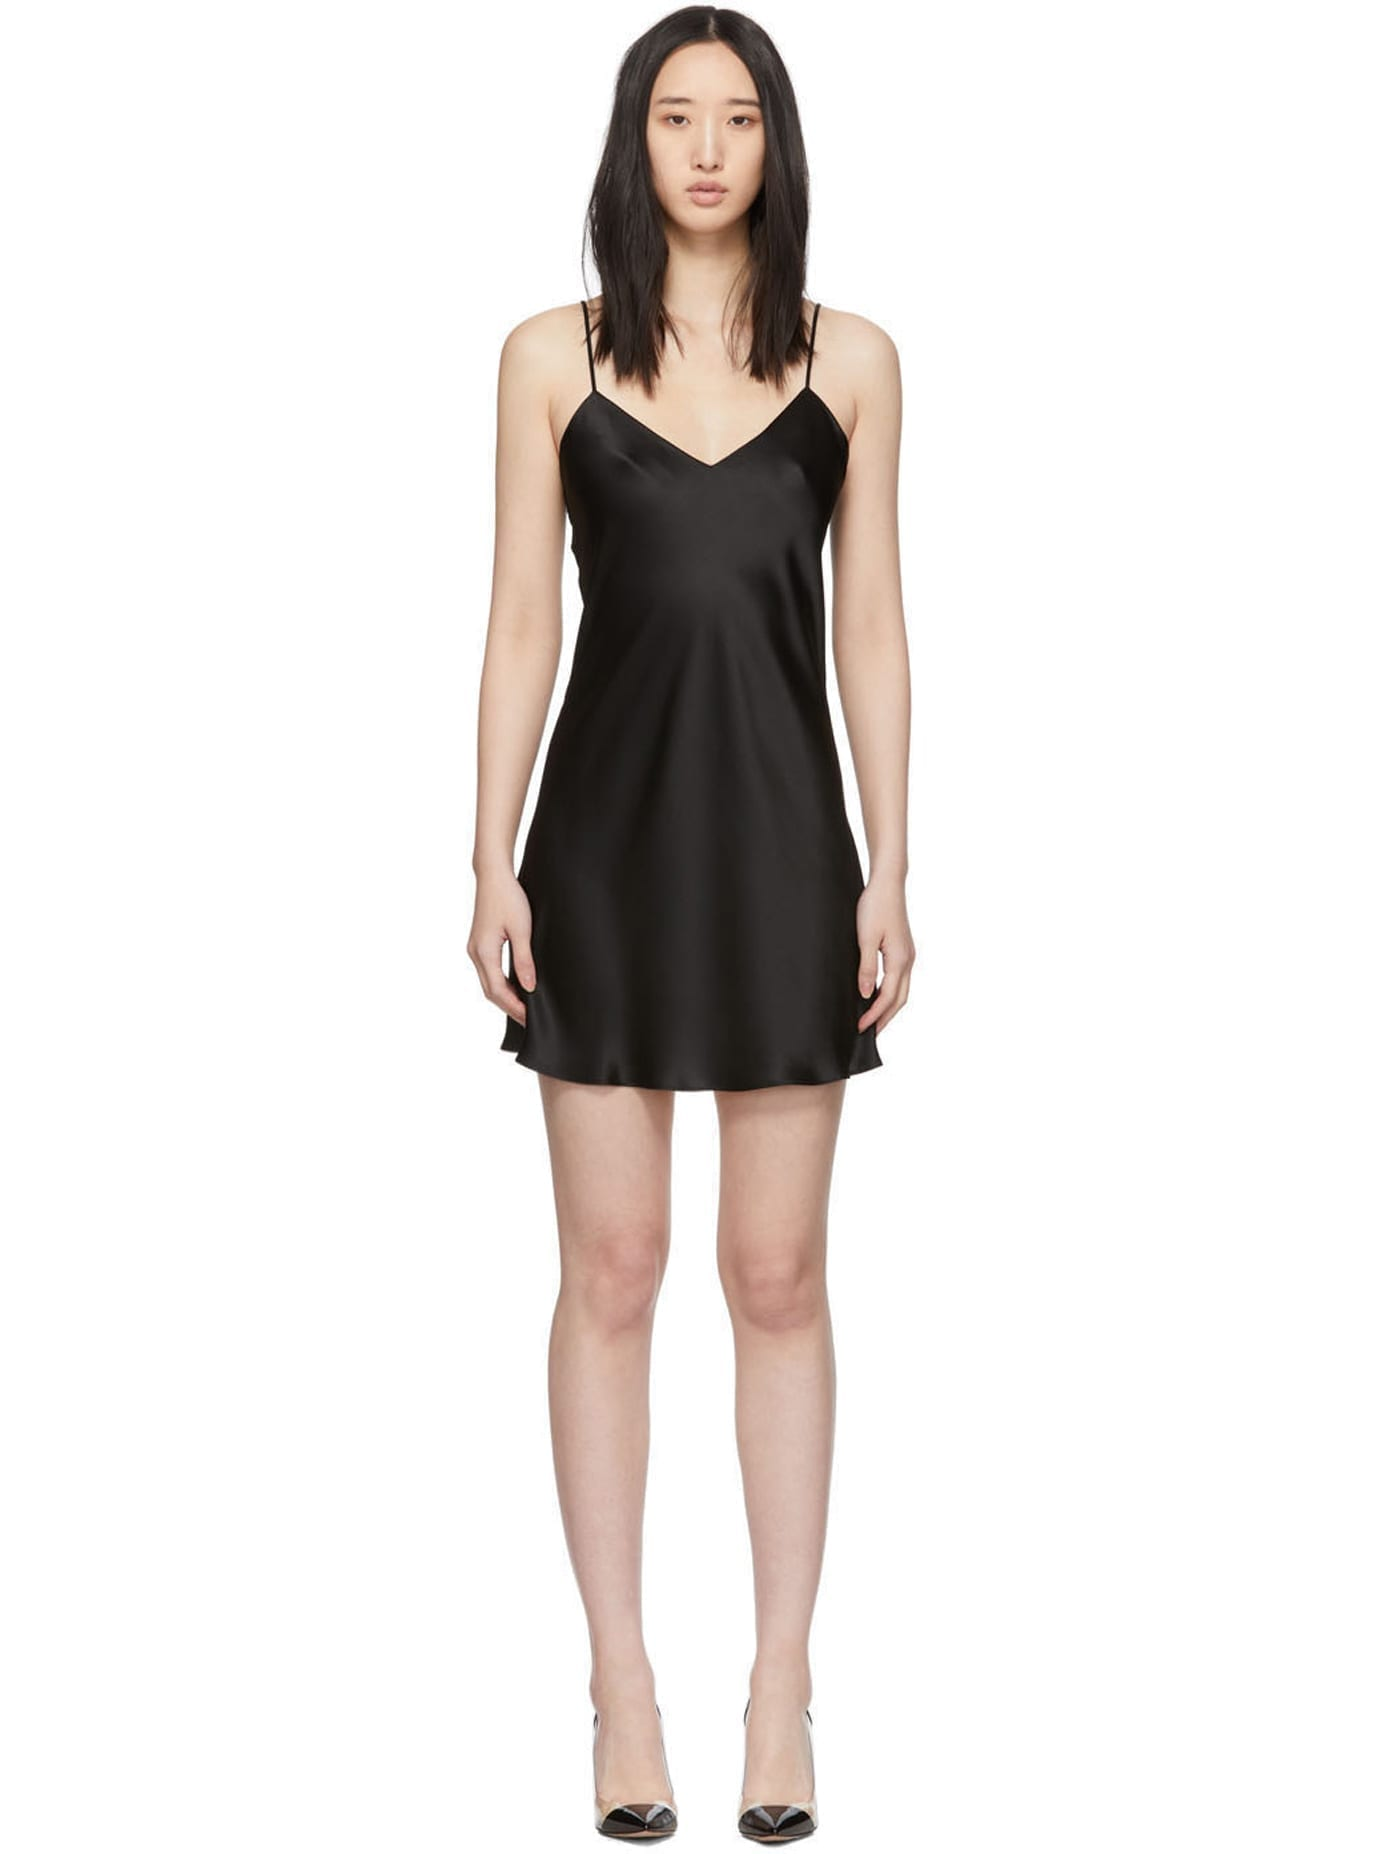 SIMONE PÉRÈLE Black Dream Short Dress